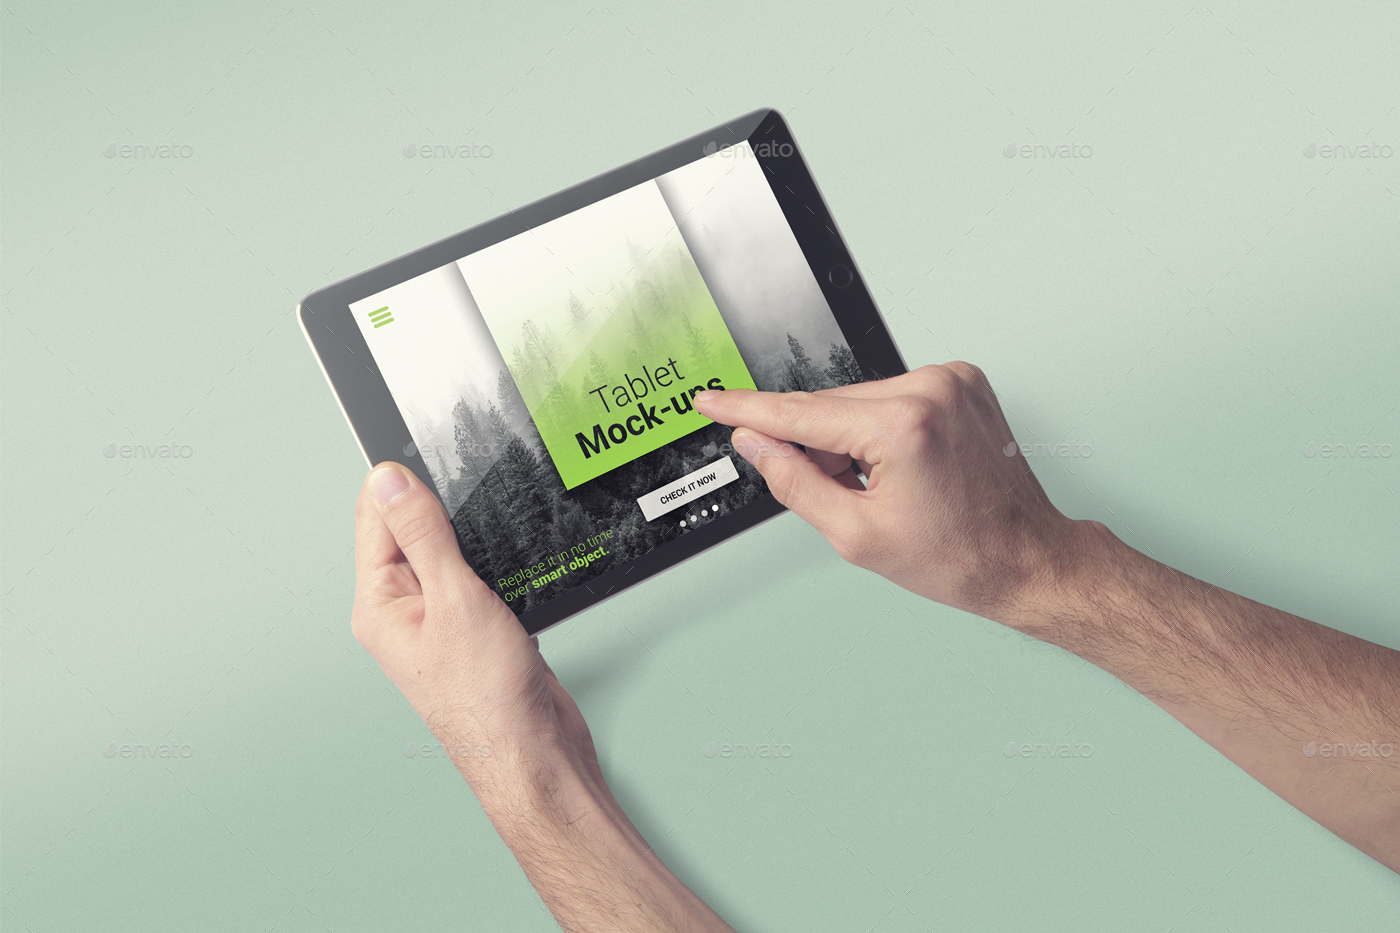 Ipad Retina Wallpaper Art Hand: IPad Tablet UI App Mockups With Vivid Backgrounds By